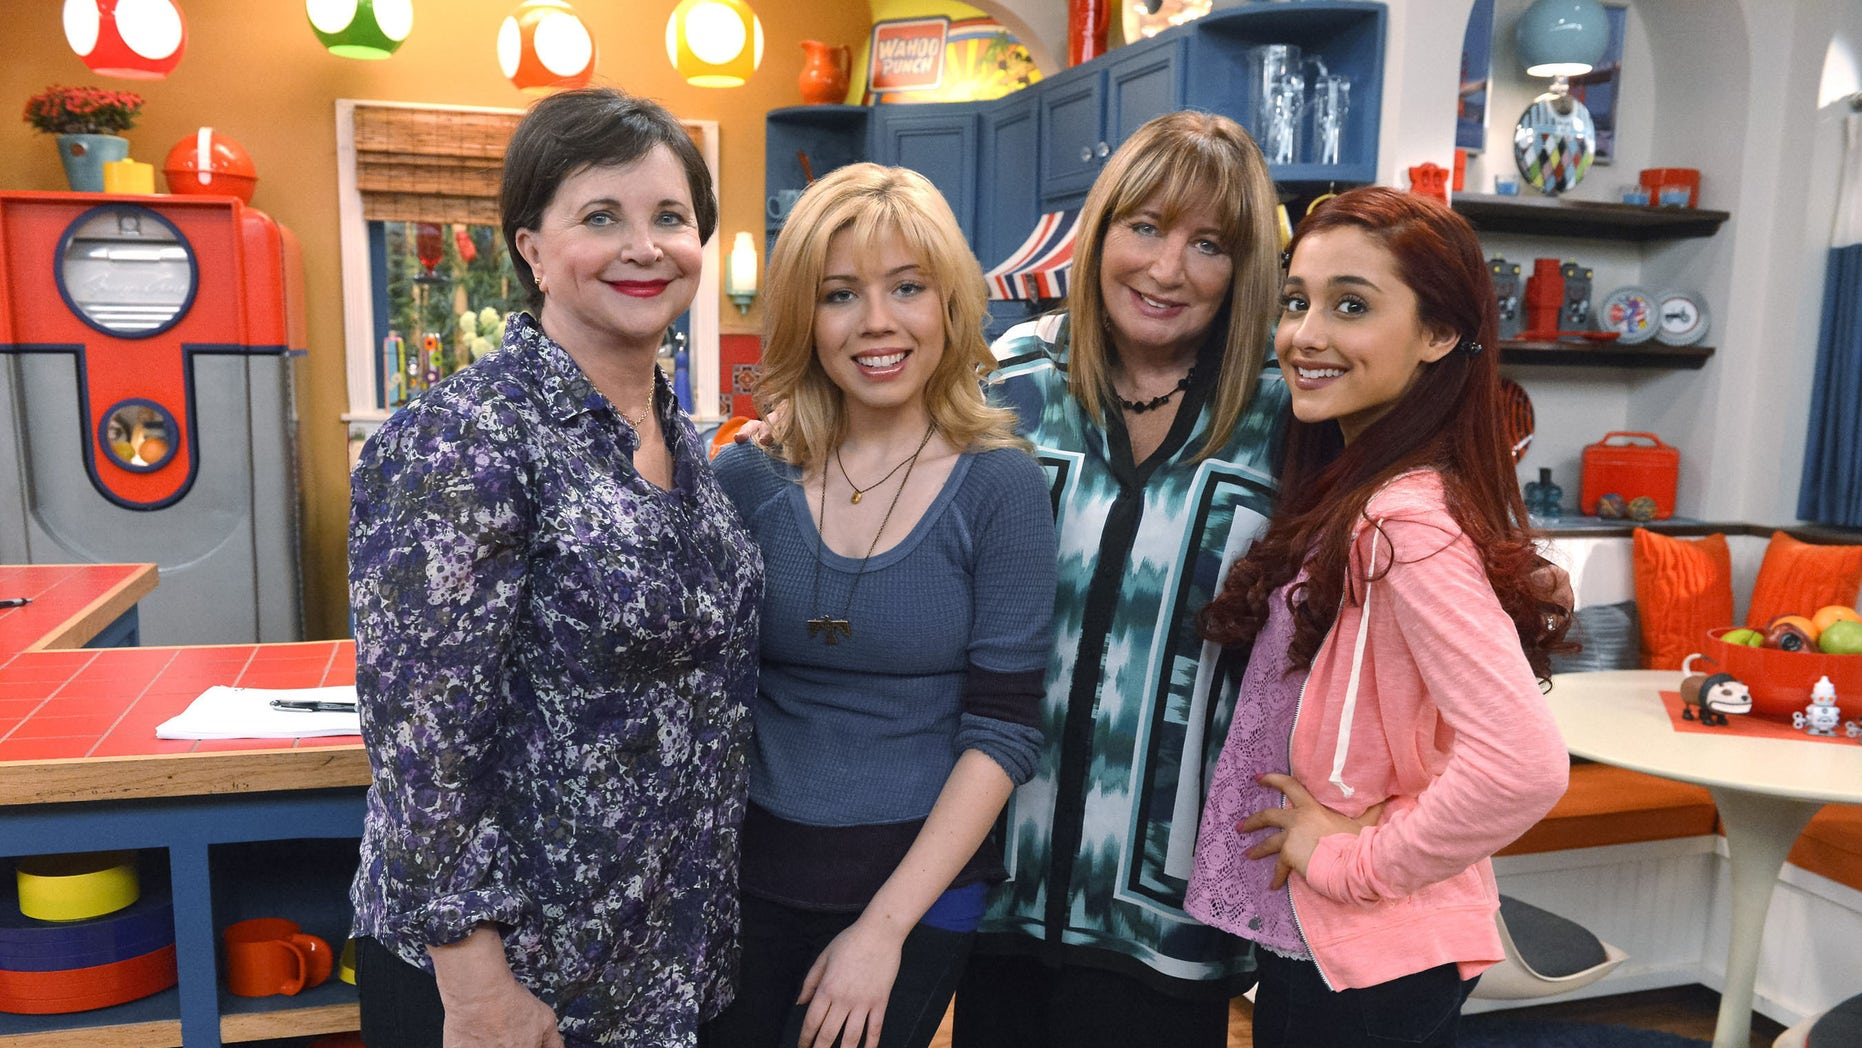 """Laverne & Shirley's"" Penny Marshall and Cindy Williams to Reunite on ""Sam & Cat,"" Saturday, Nov. 9, at 8p.m.  (PRNewsFoto/Nickelodeon)"